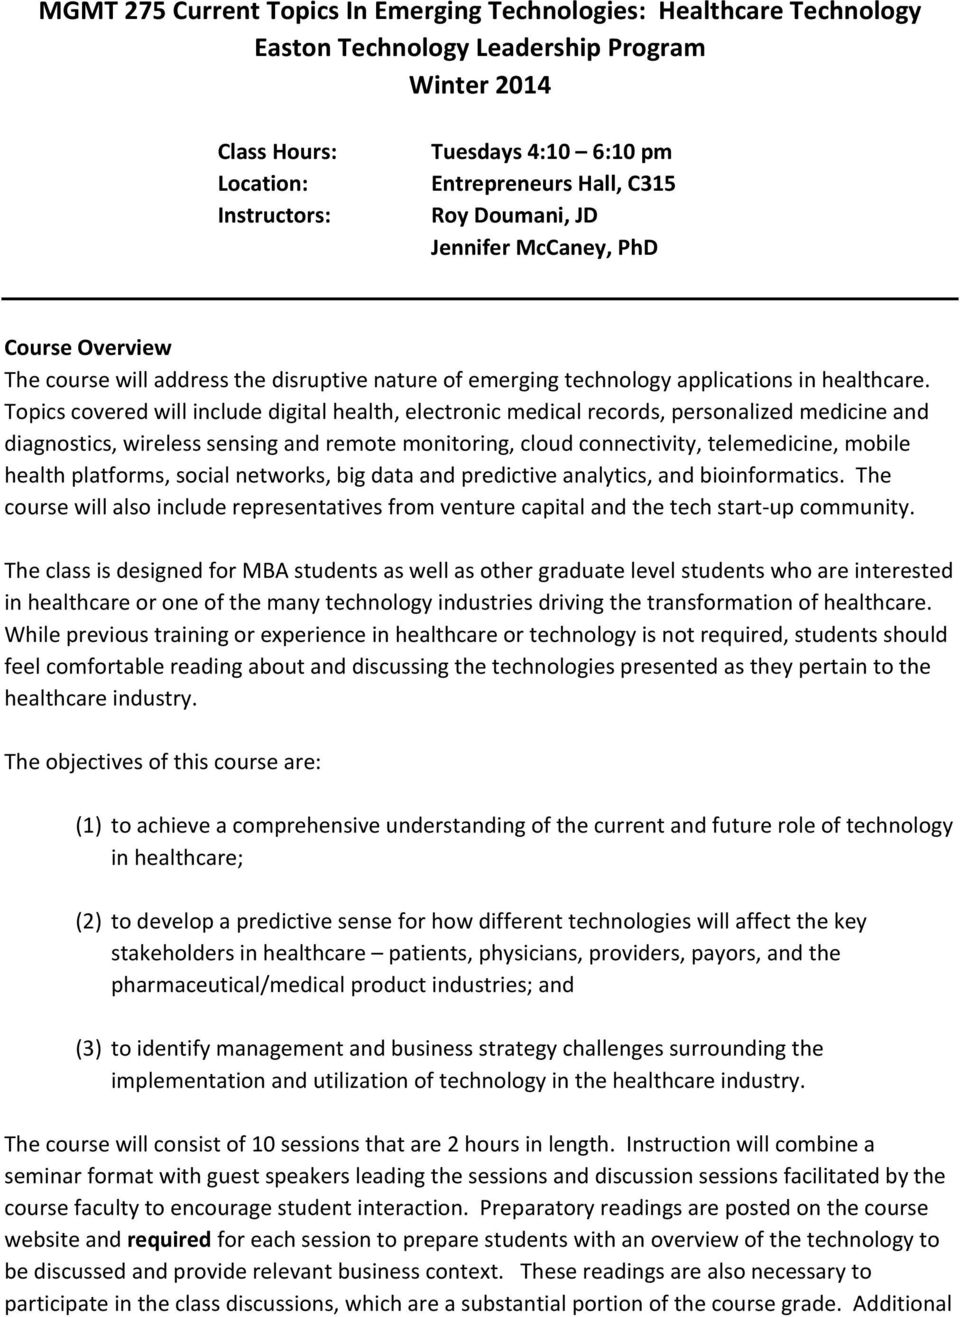 MGMT 275 Current Topics In Emerging Technologies: Healthcare